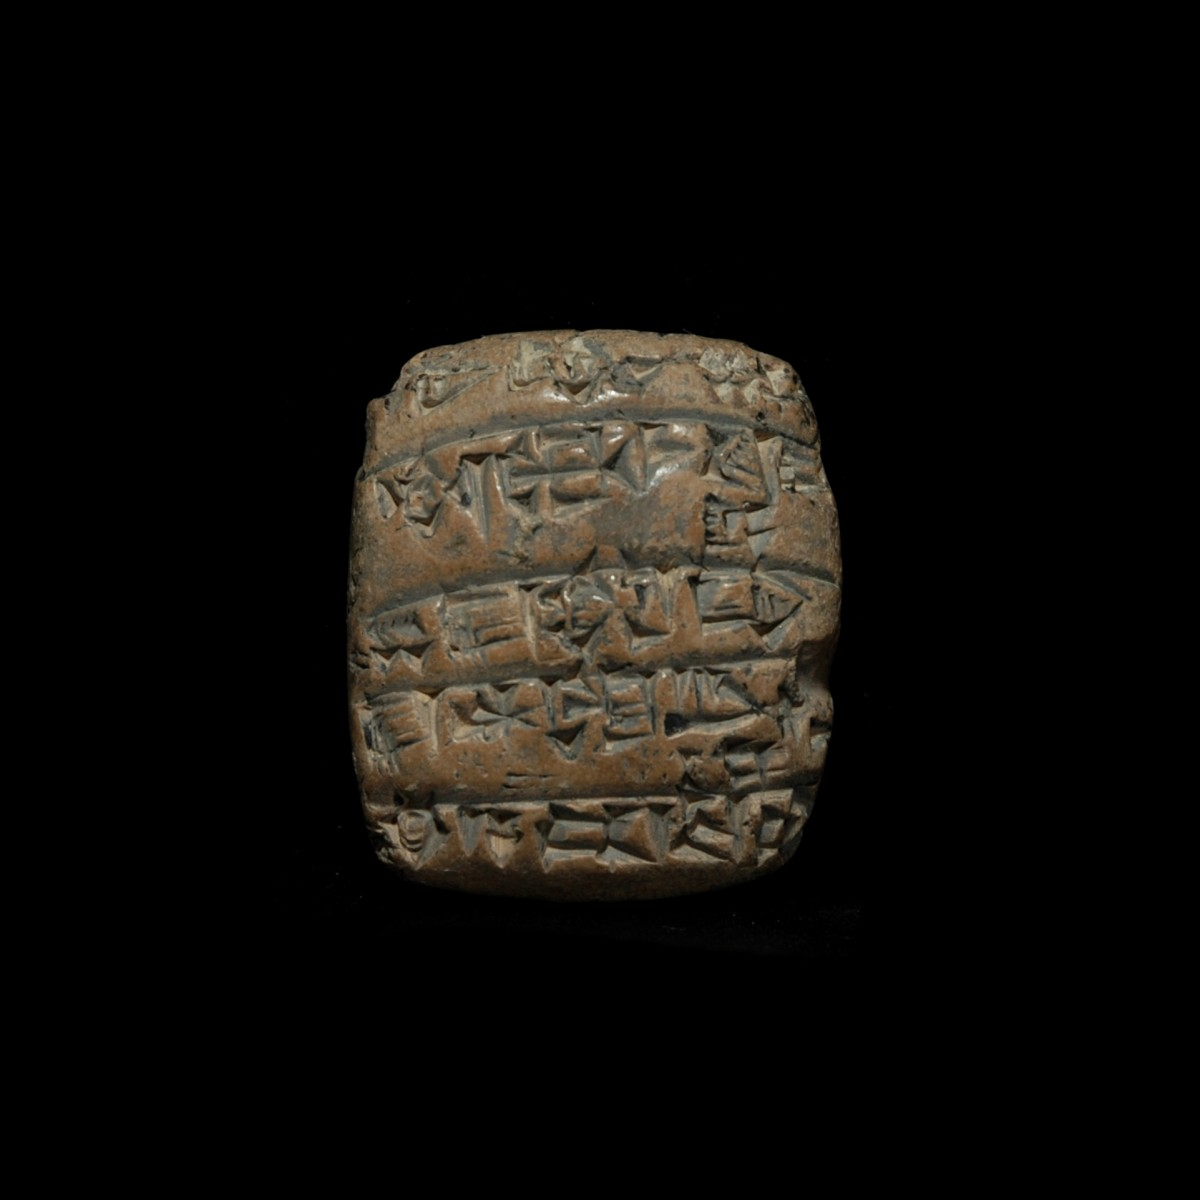 Cuneiform tablet with erased inscription on one side A